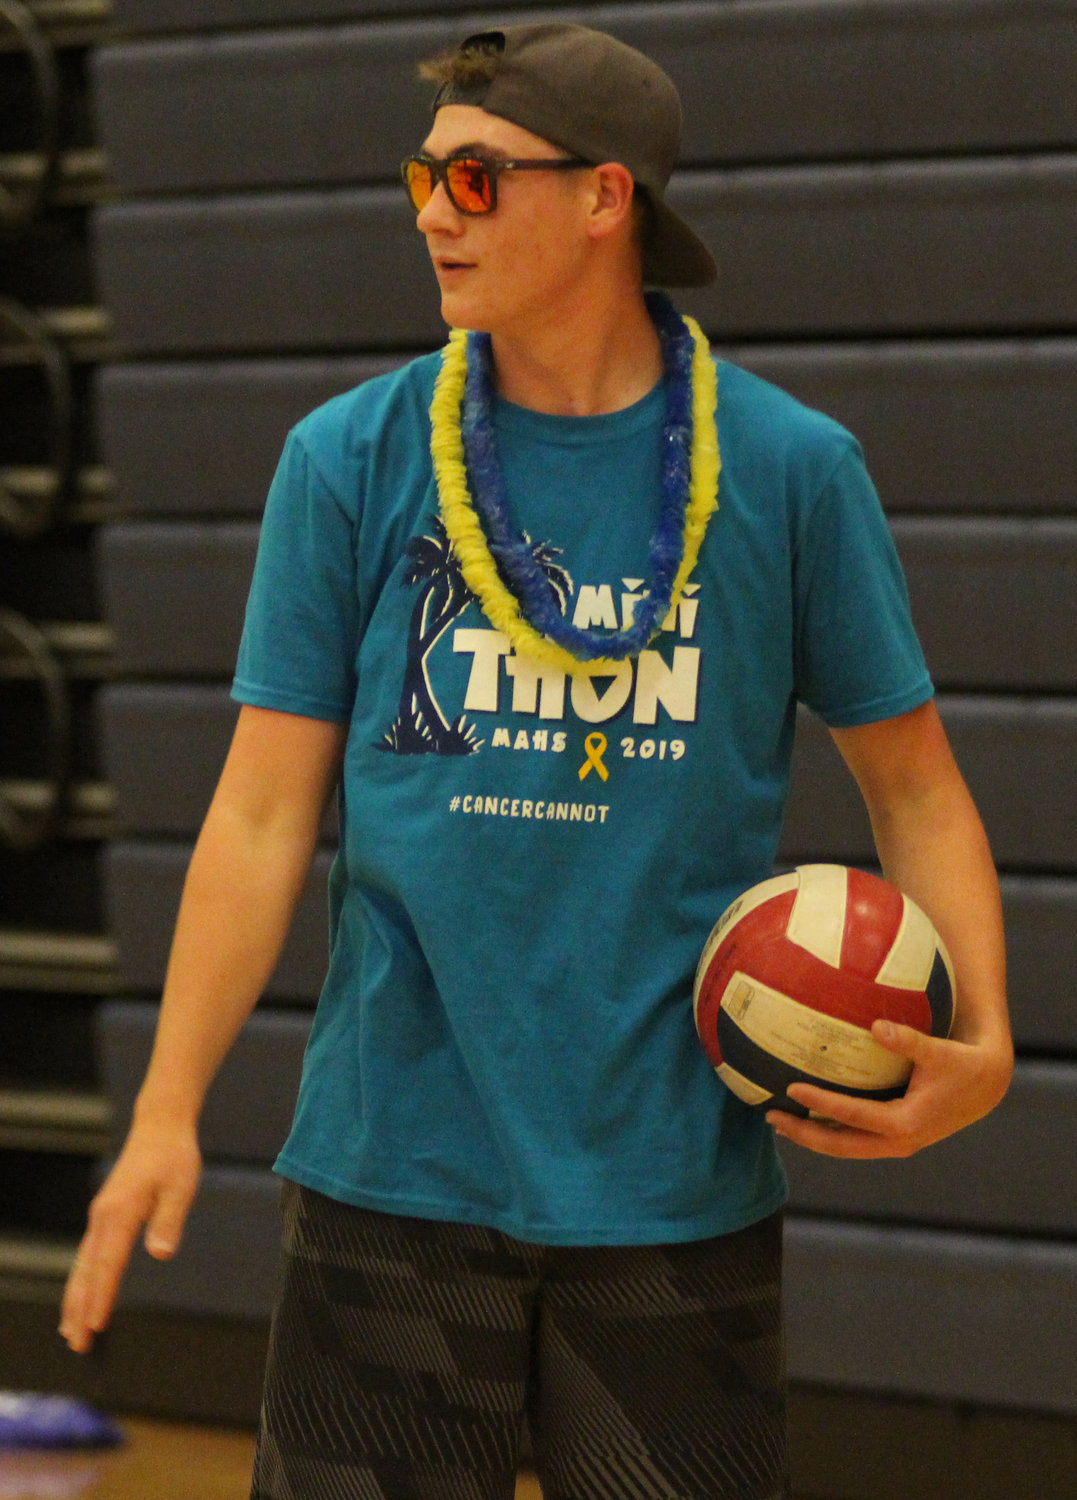 Justin Yohn gets ready for volleyball at Middletown Area High School's Mini-THON on May 3.